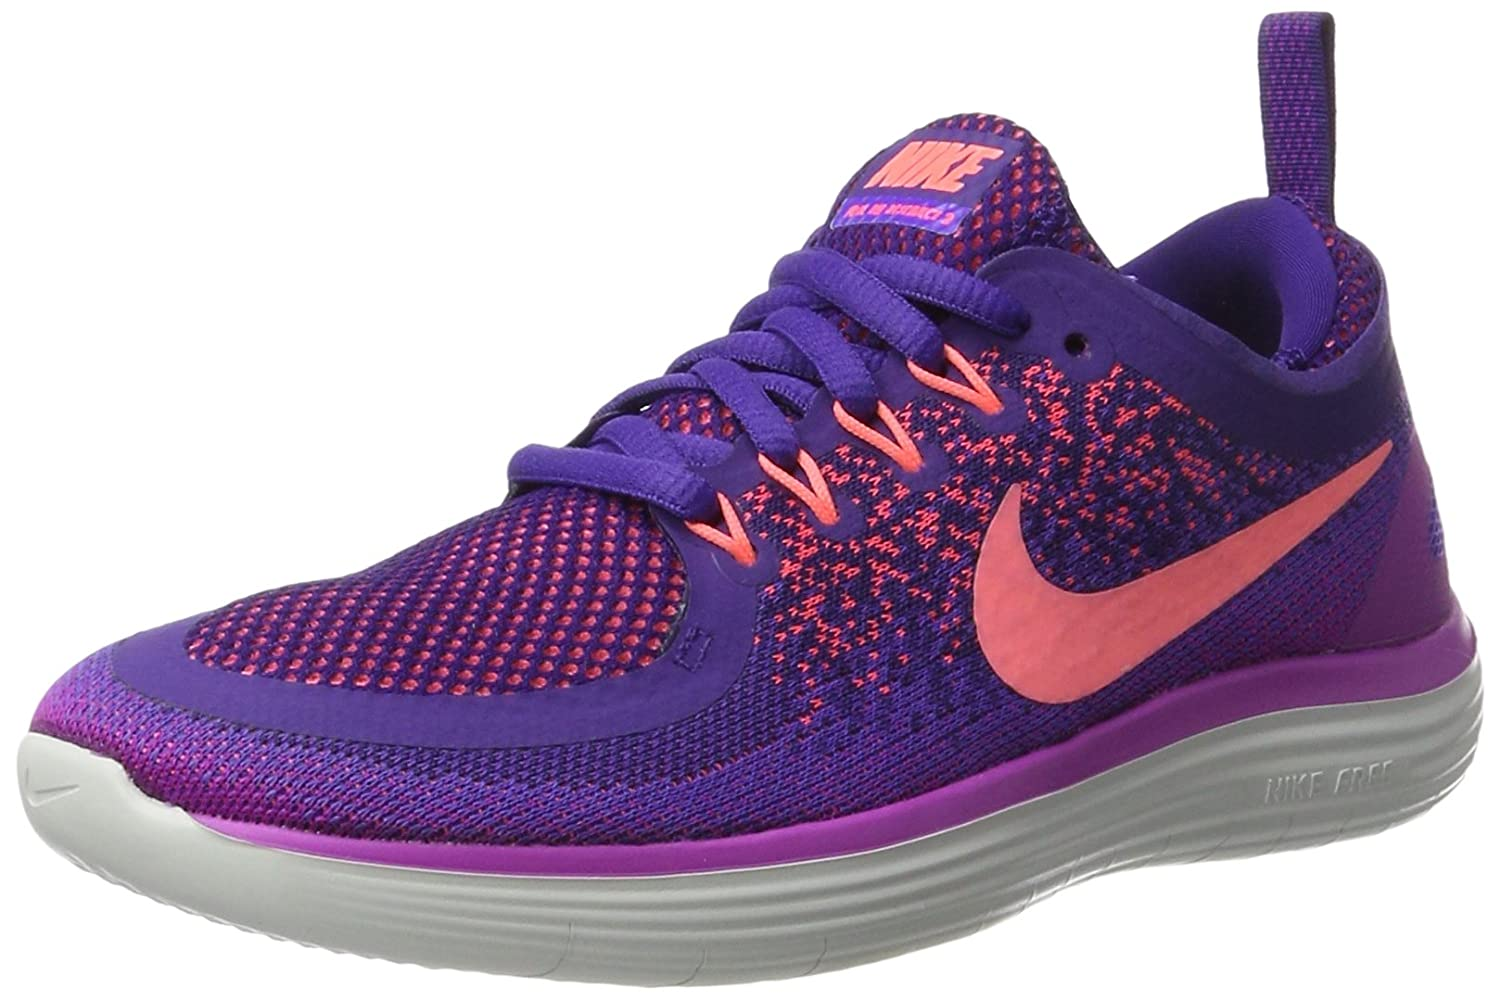 Nike Women's Free Rn Distance 2 Running Shoe B06ZYZKC2D 6 B(M) US|Hyper Grape/Lava Glow-court Purple